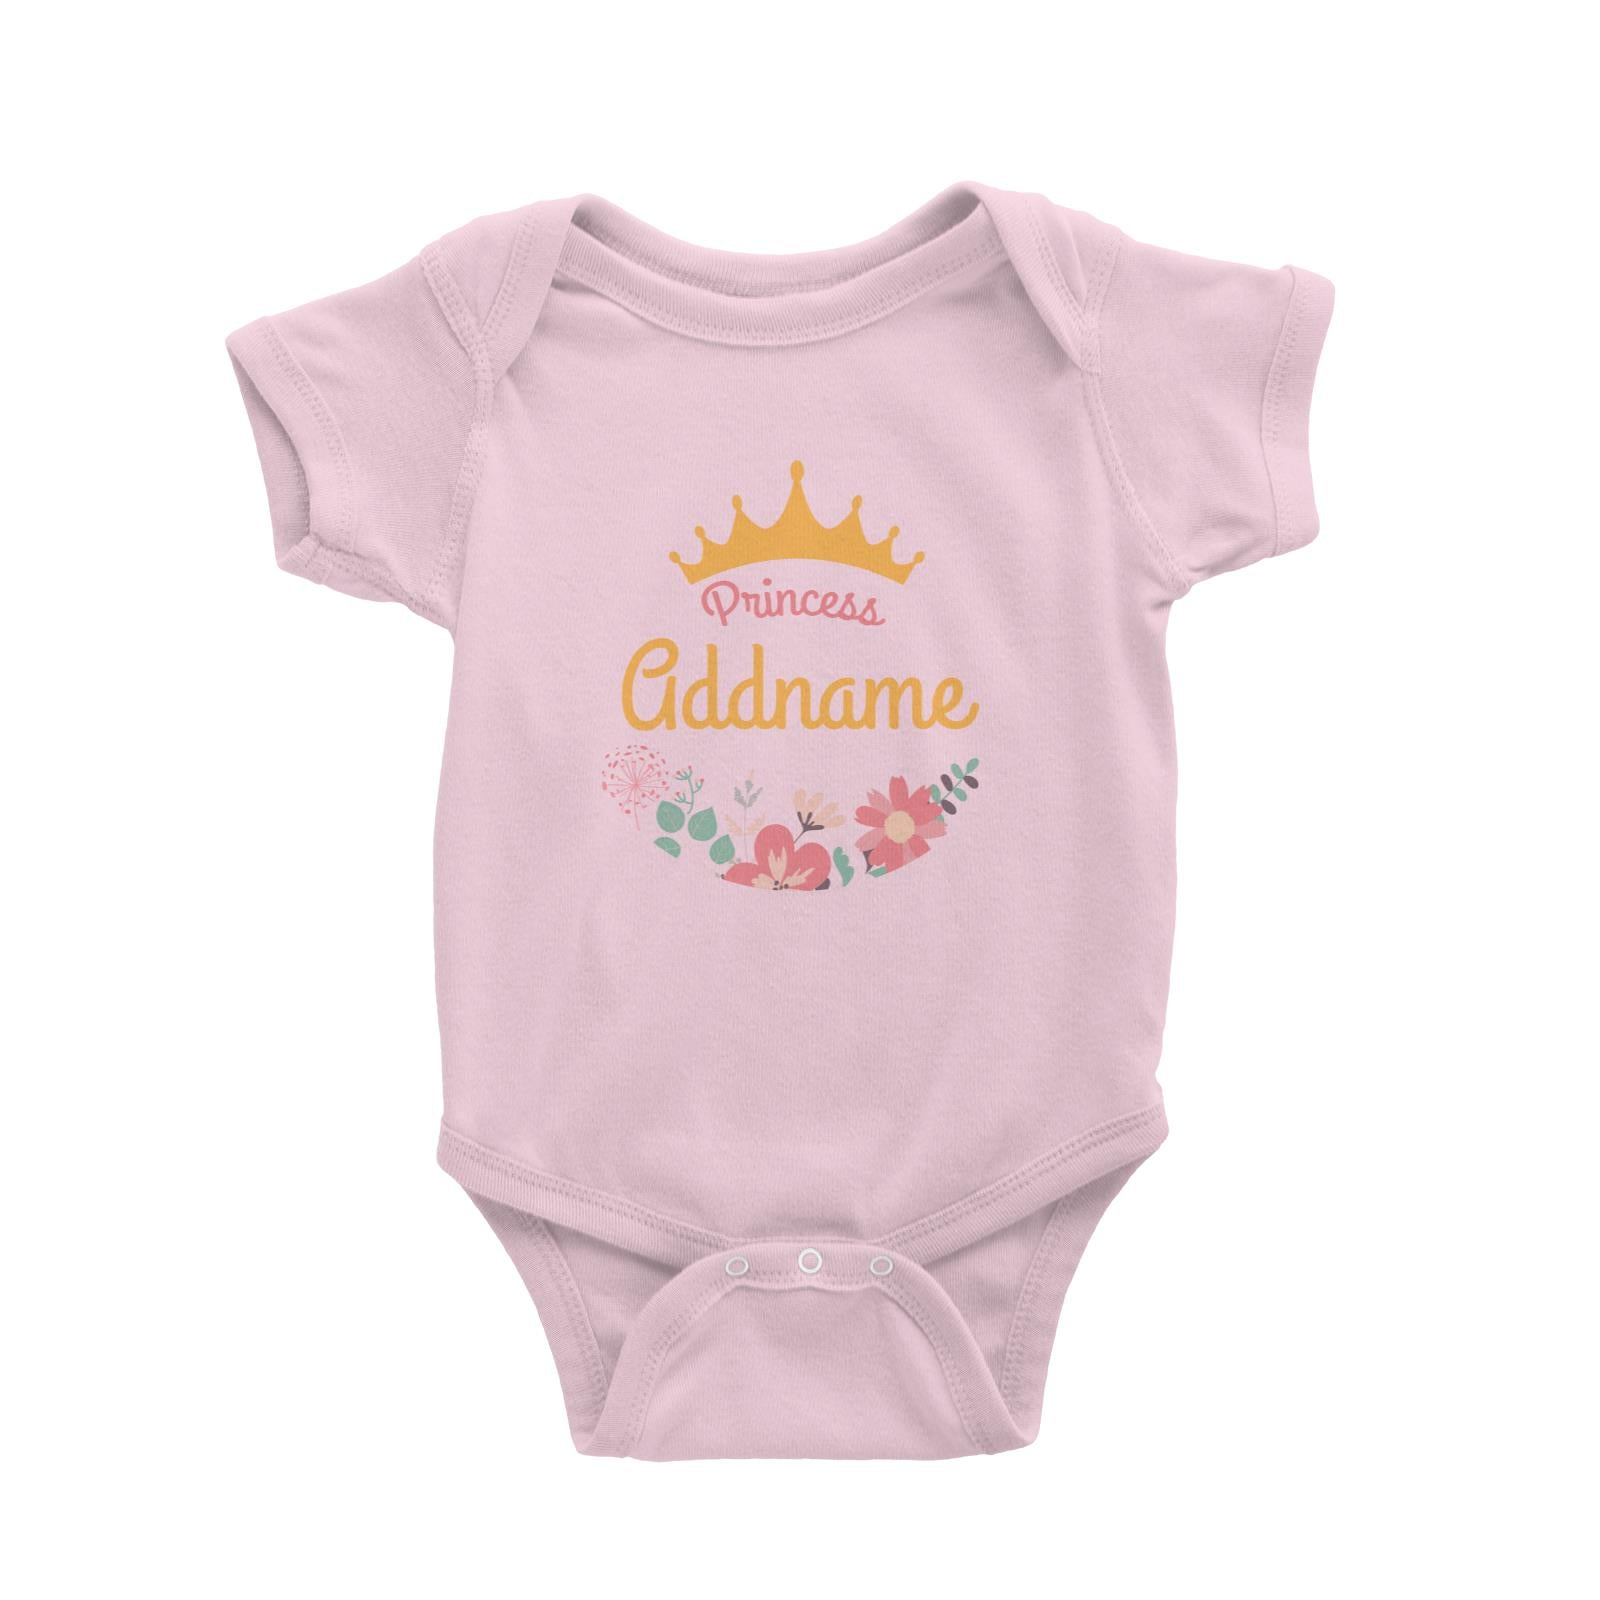 Princess Addname with Tiara and Flowers 2 Baby Romper